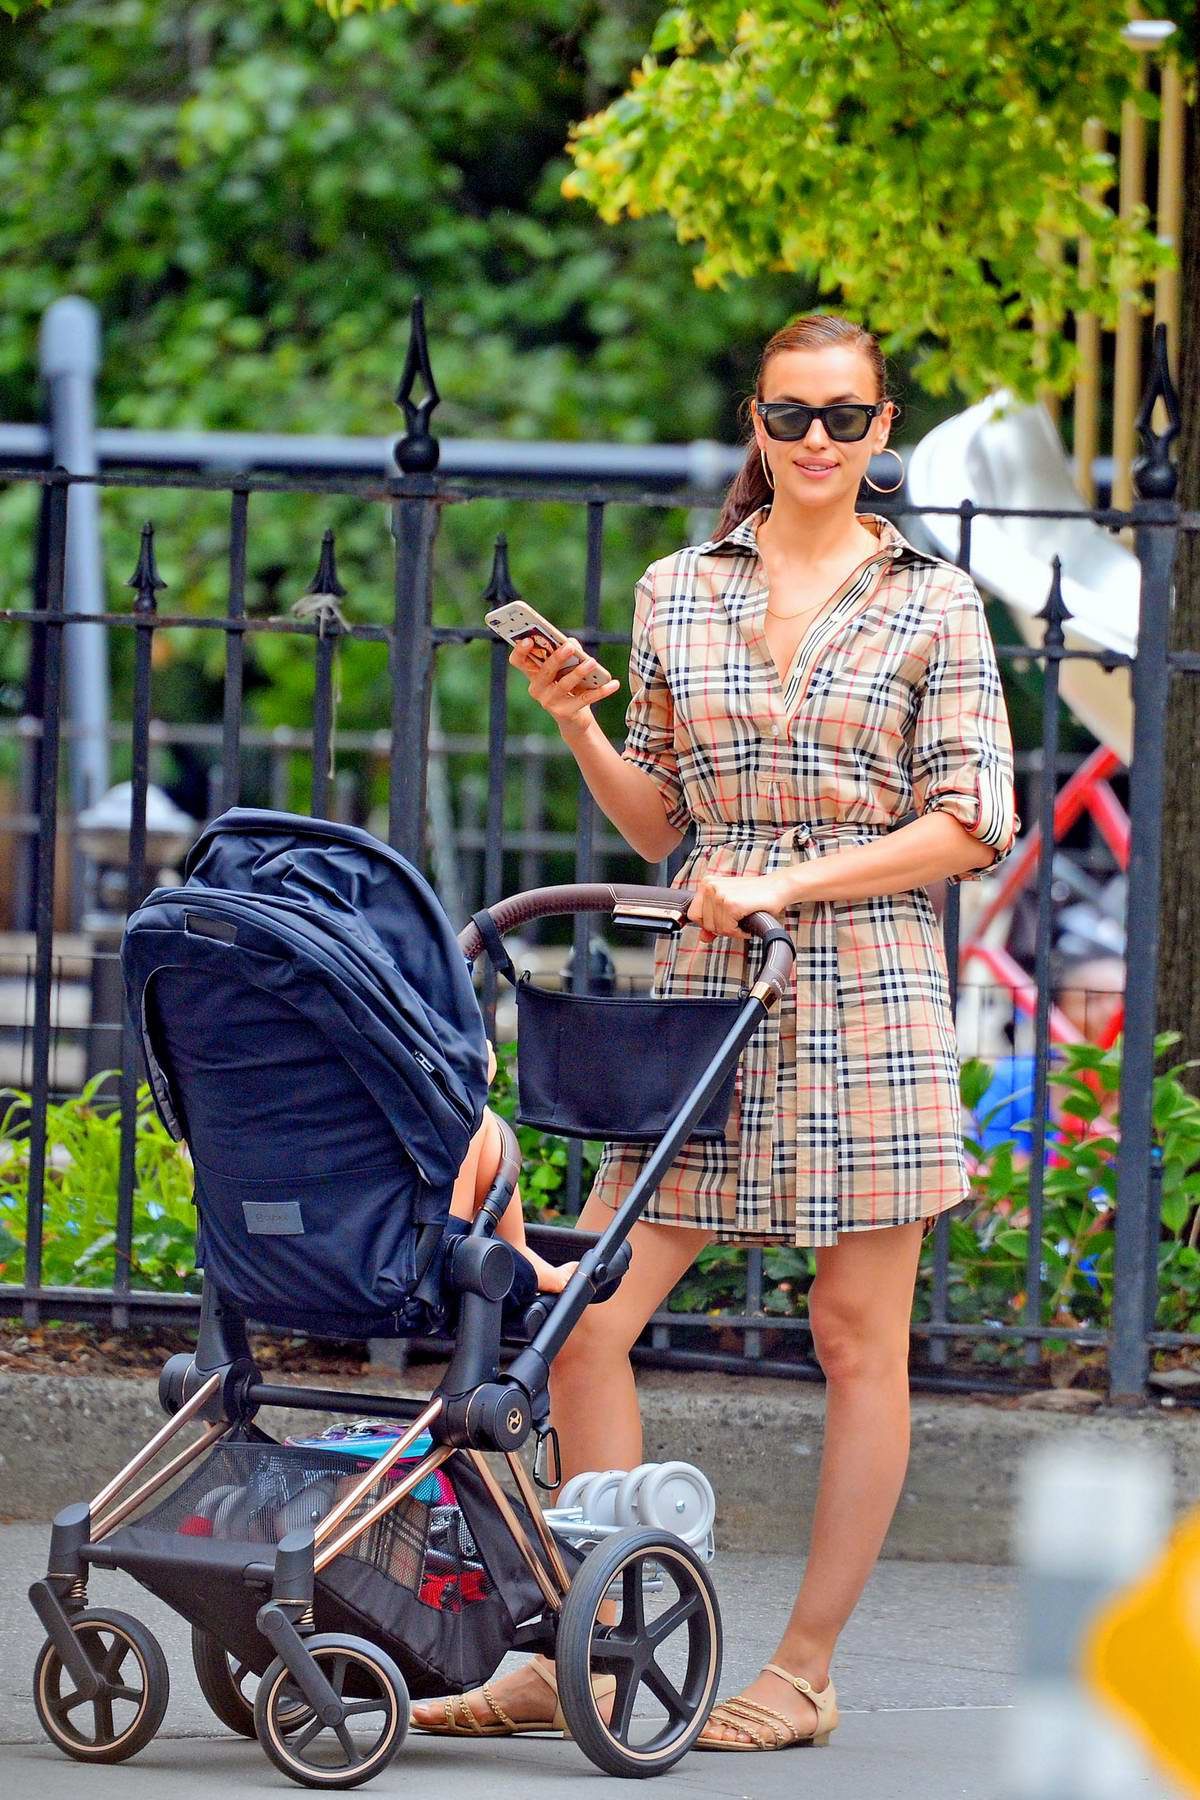 Irina Shayk dons plaid as she takes her daughter Lea for a stroll in New York City